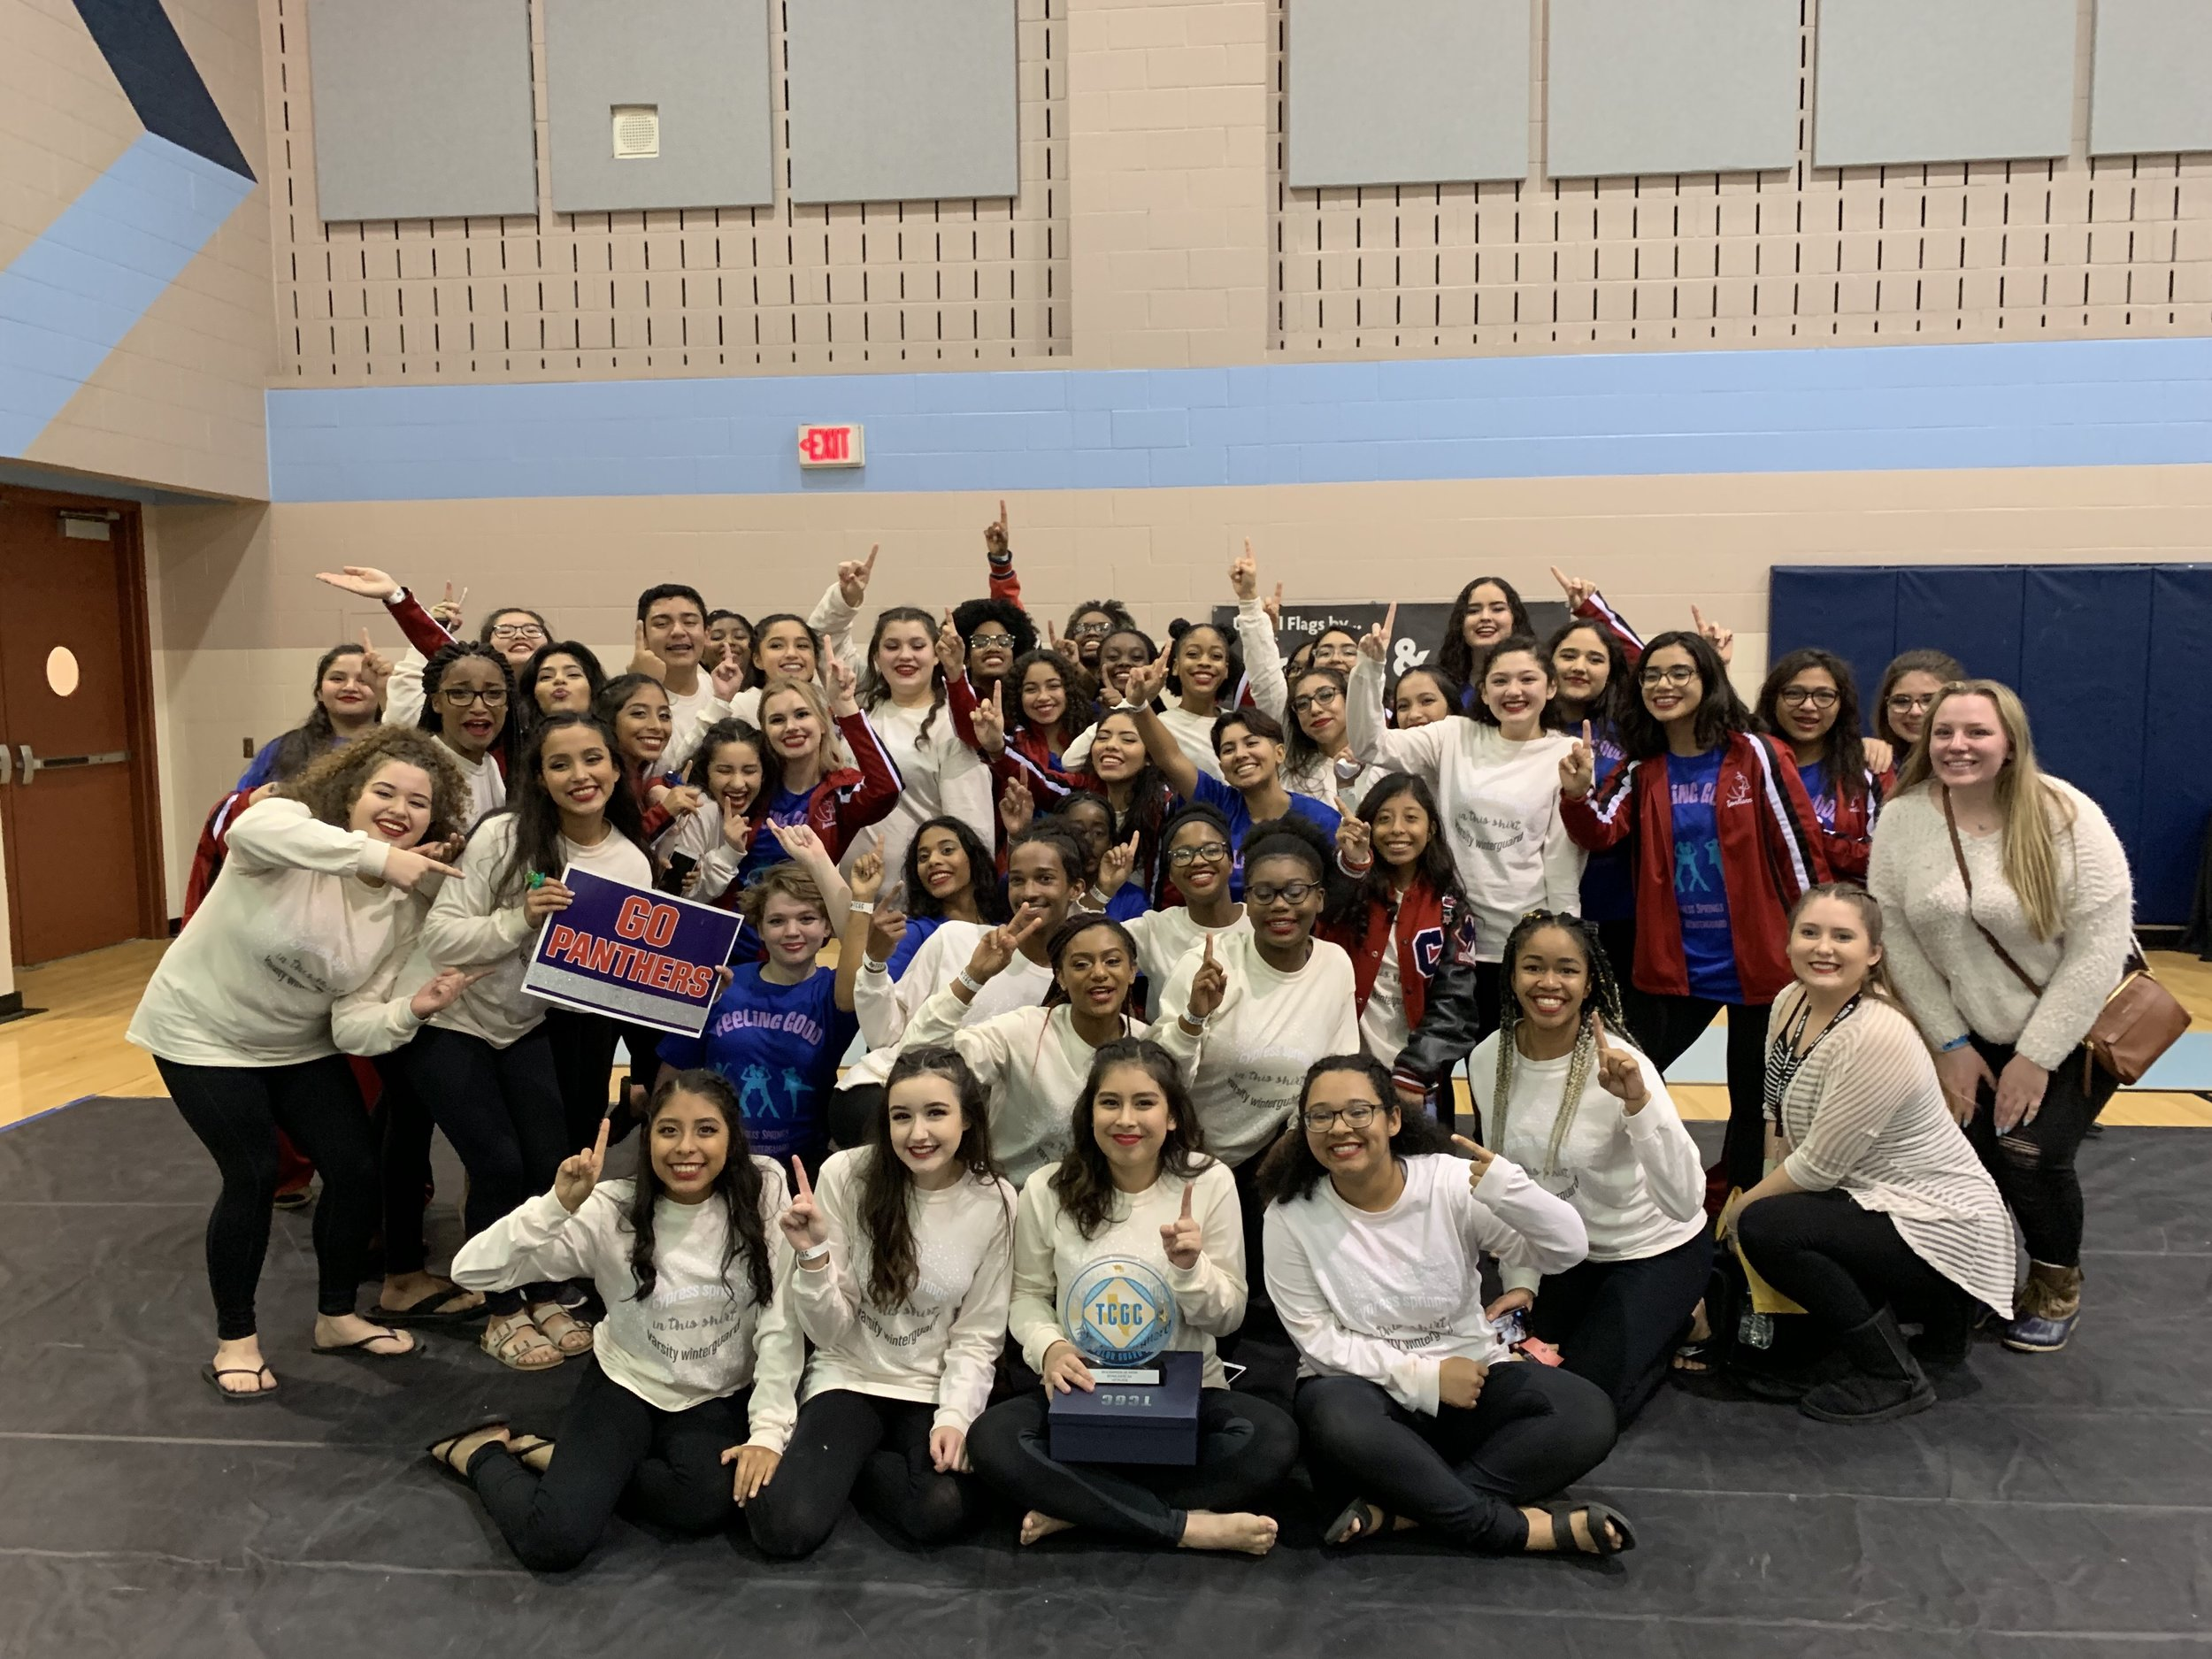 A big win has the winterguard team looking forward to the rest of the season. (Photo by sponsor)